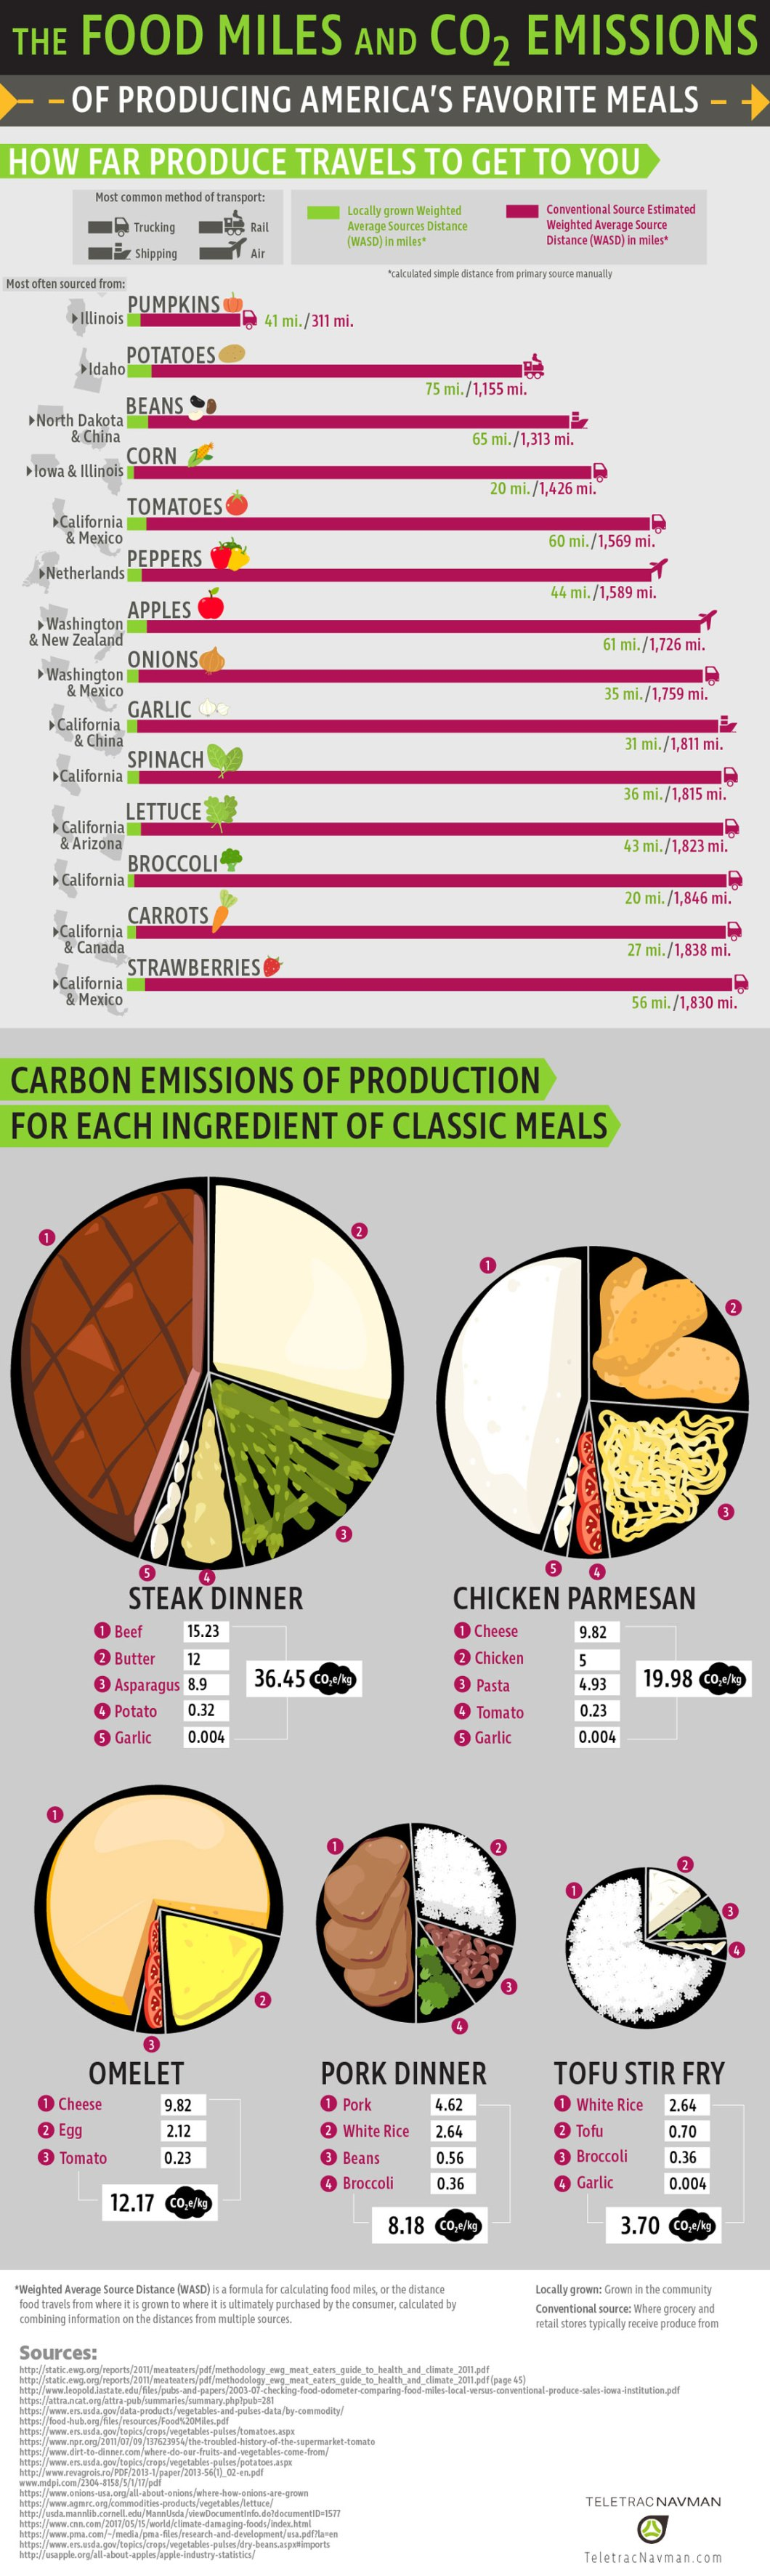 America's Favorite Foods Measured in Food Miles and CO2 Emission - Infographic